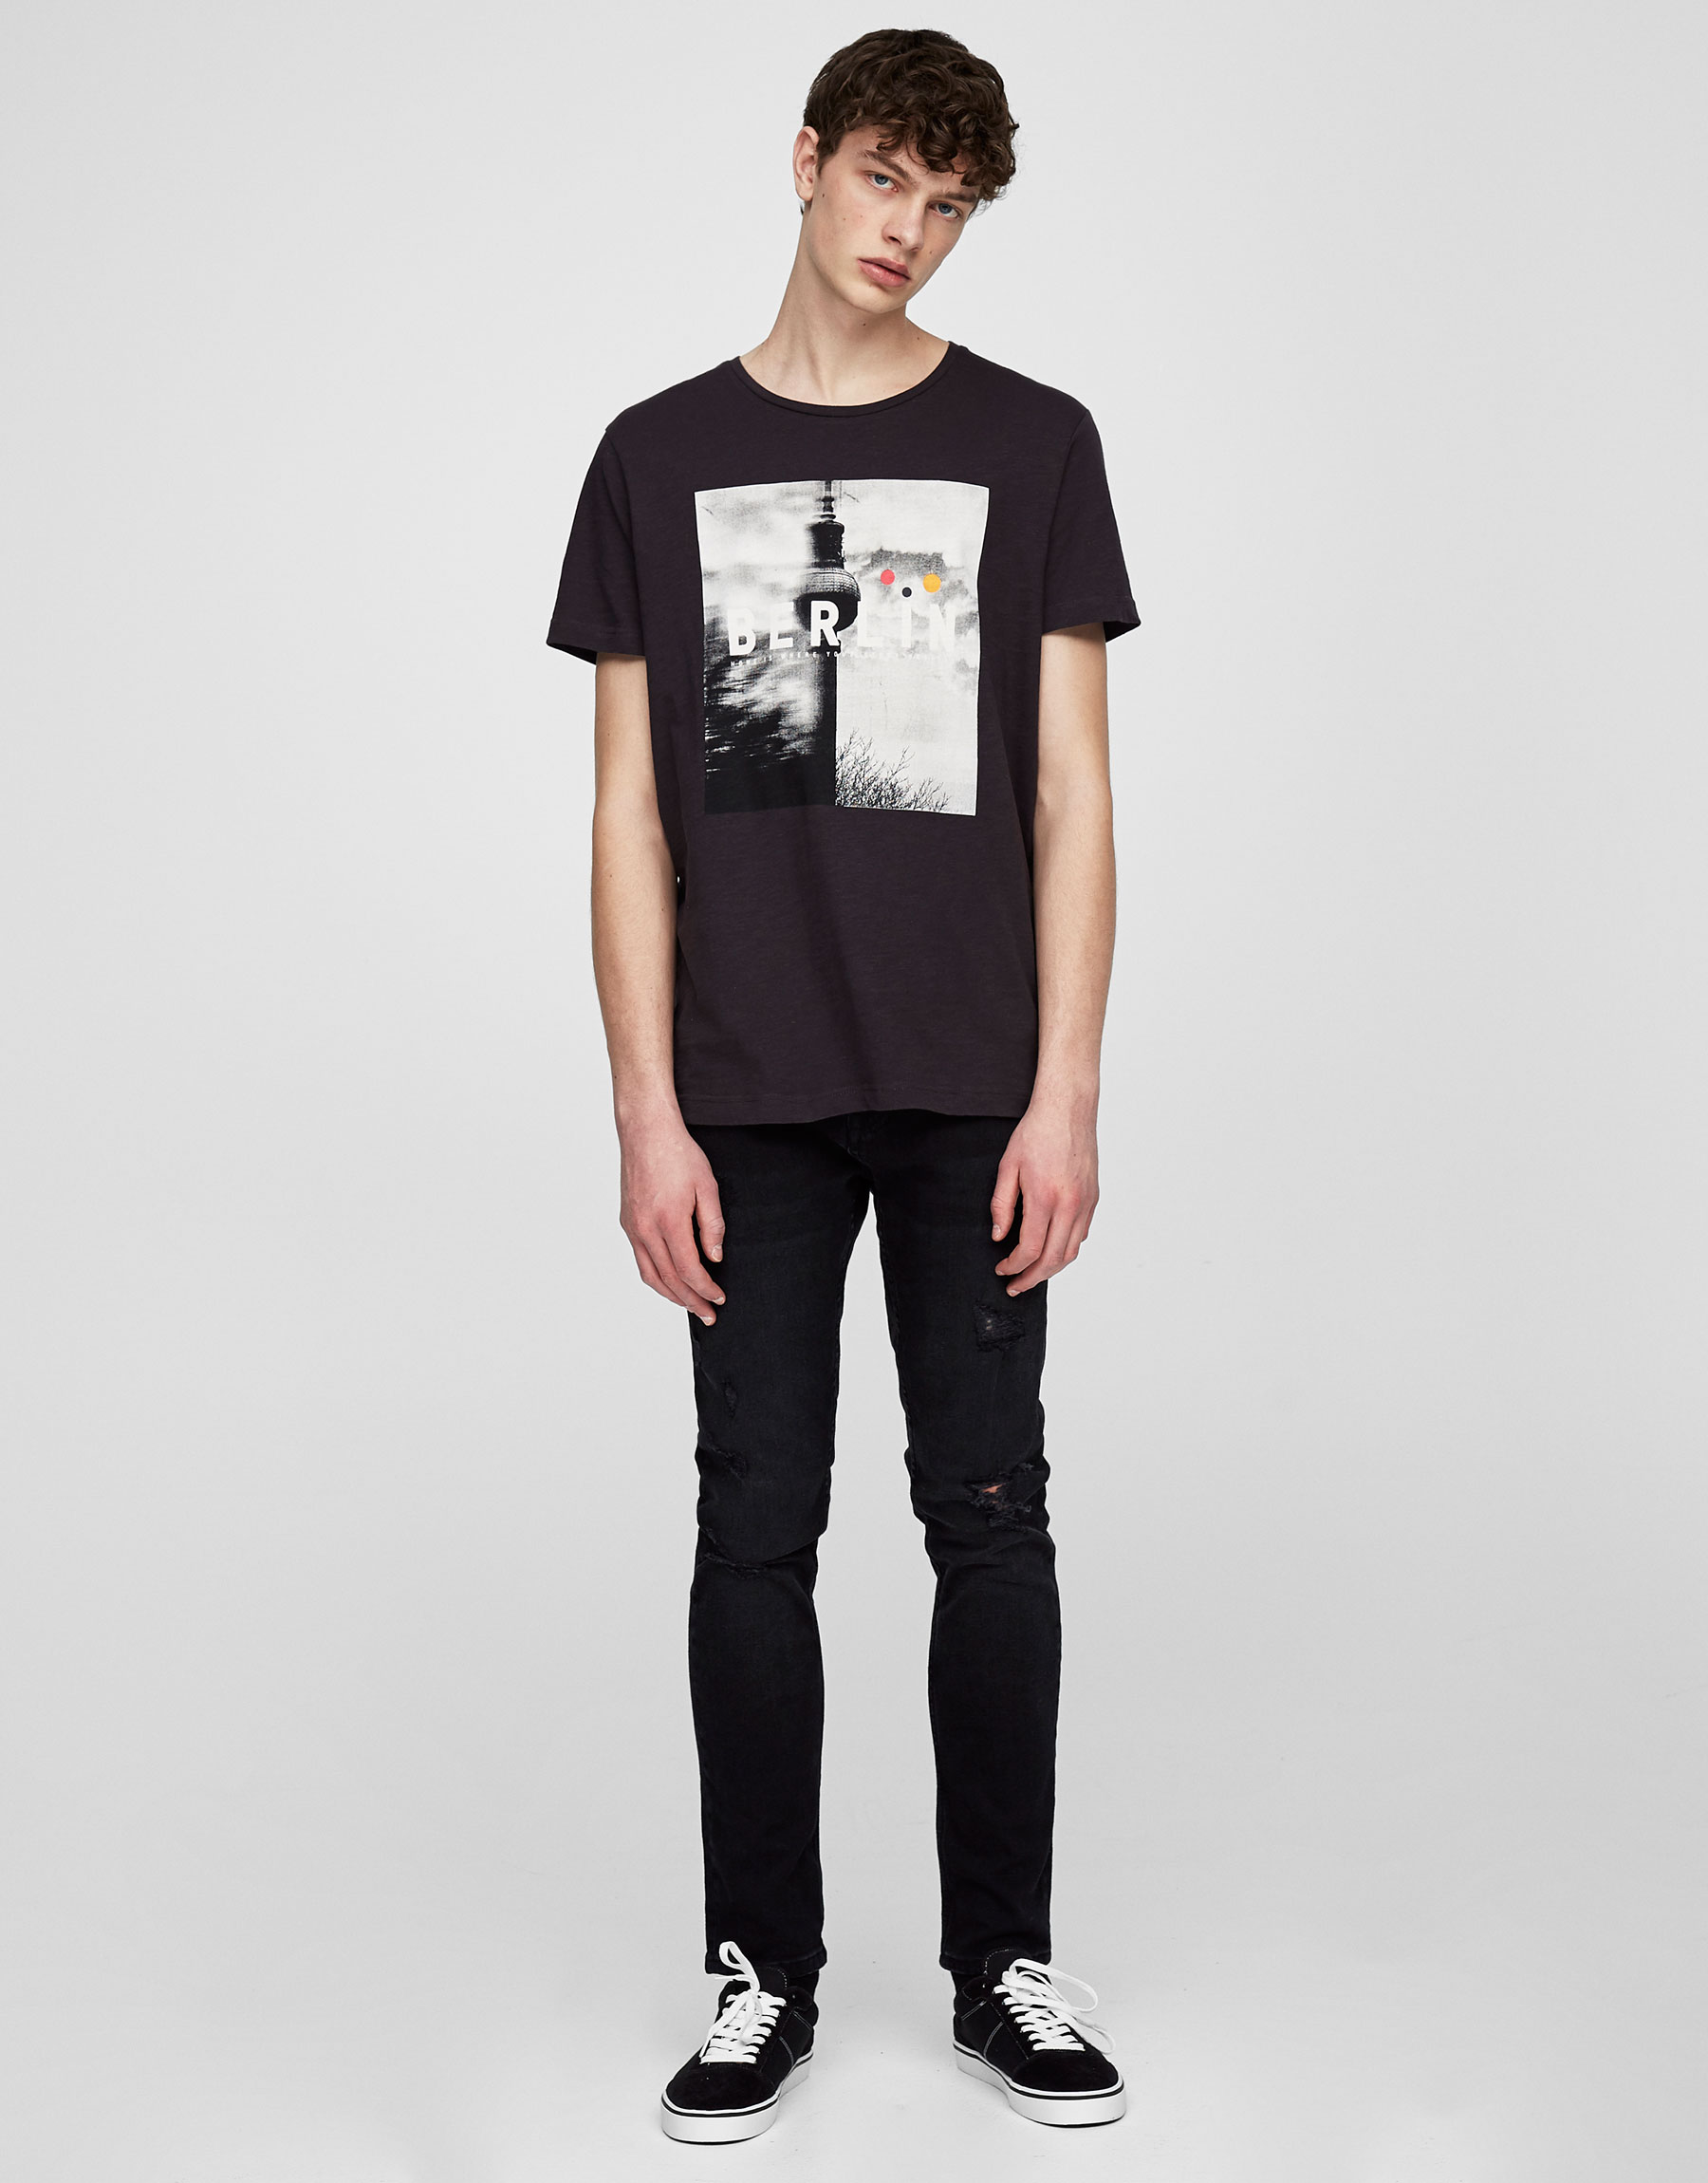 Jeans skinny fit negro